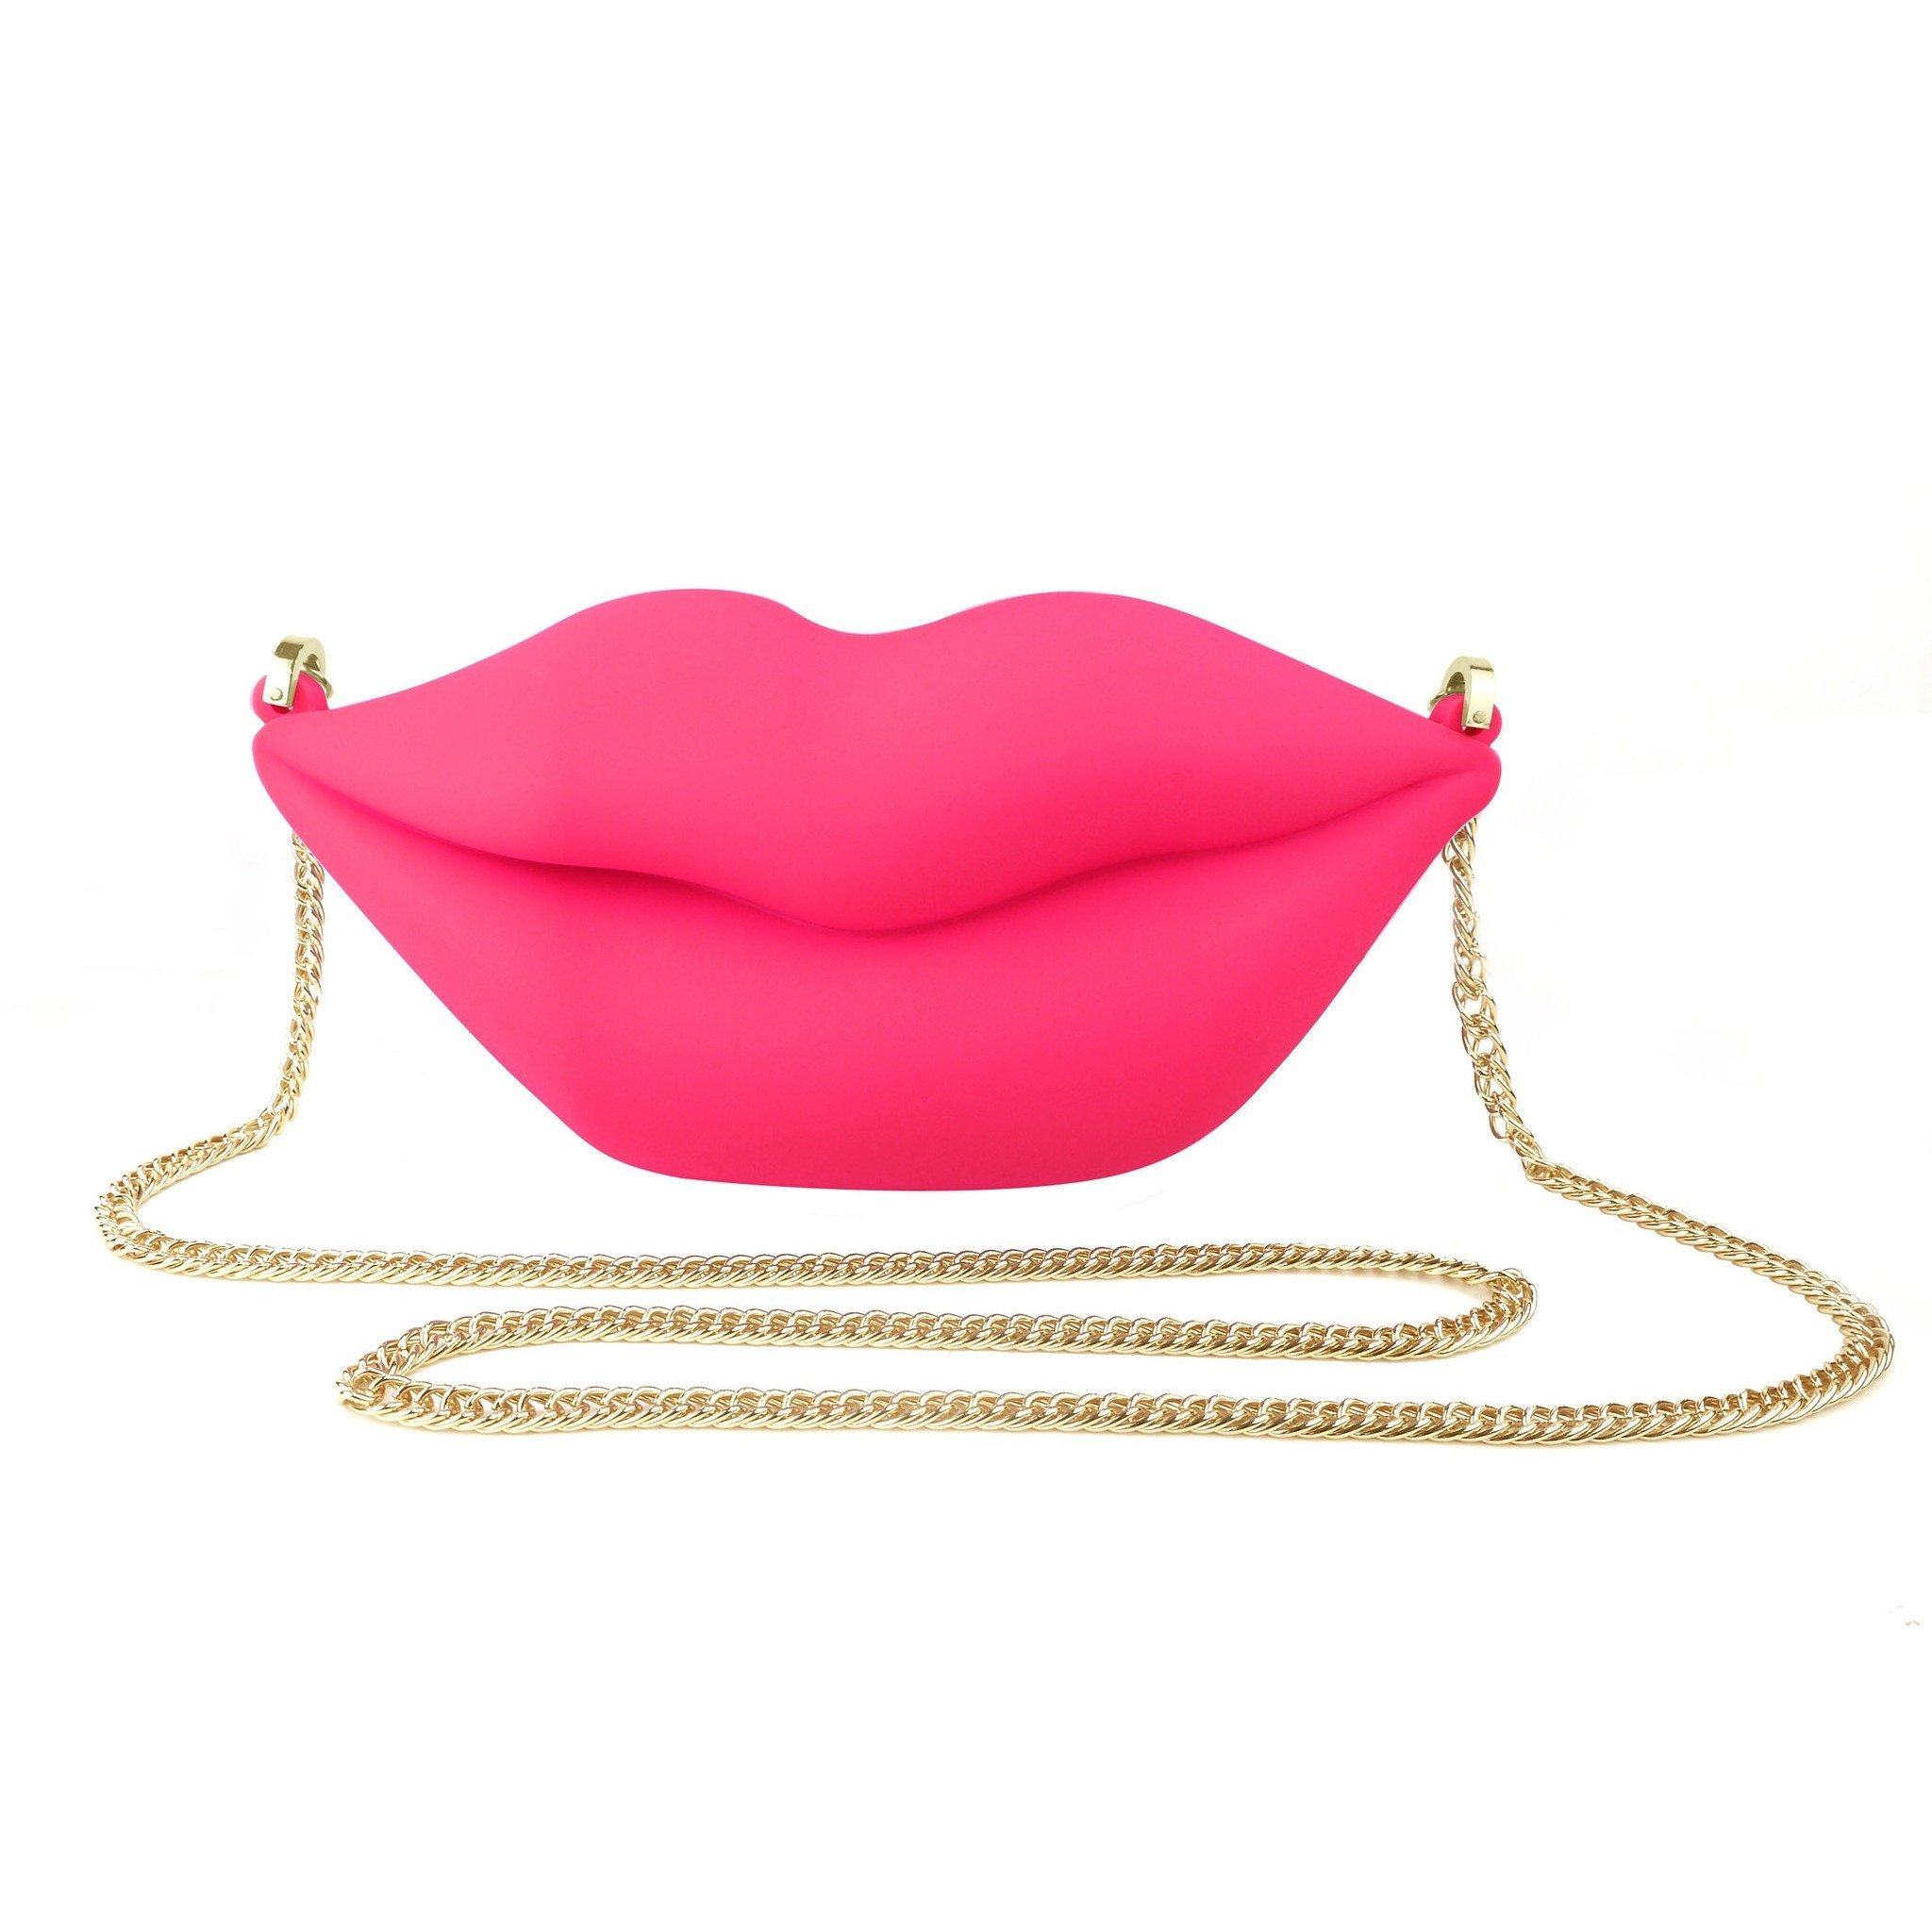 Big Kiss Bag Made in Silicone